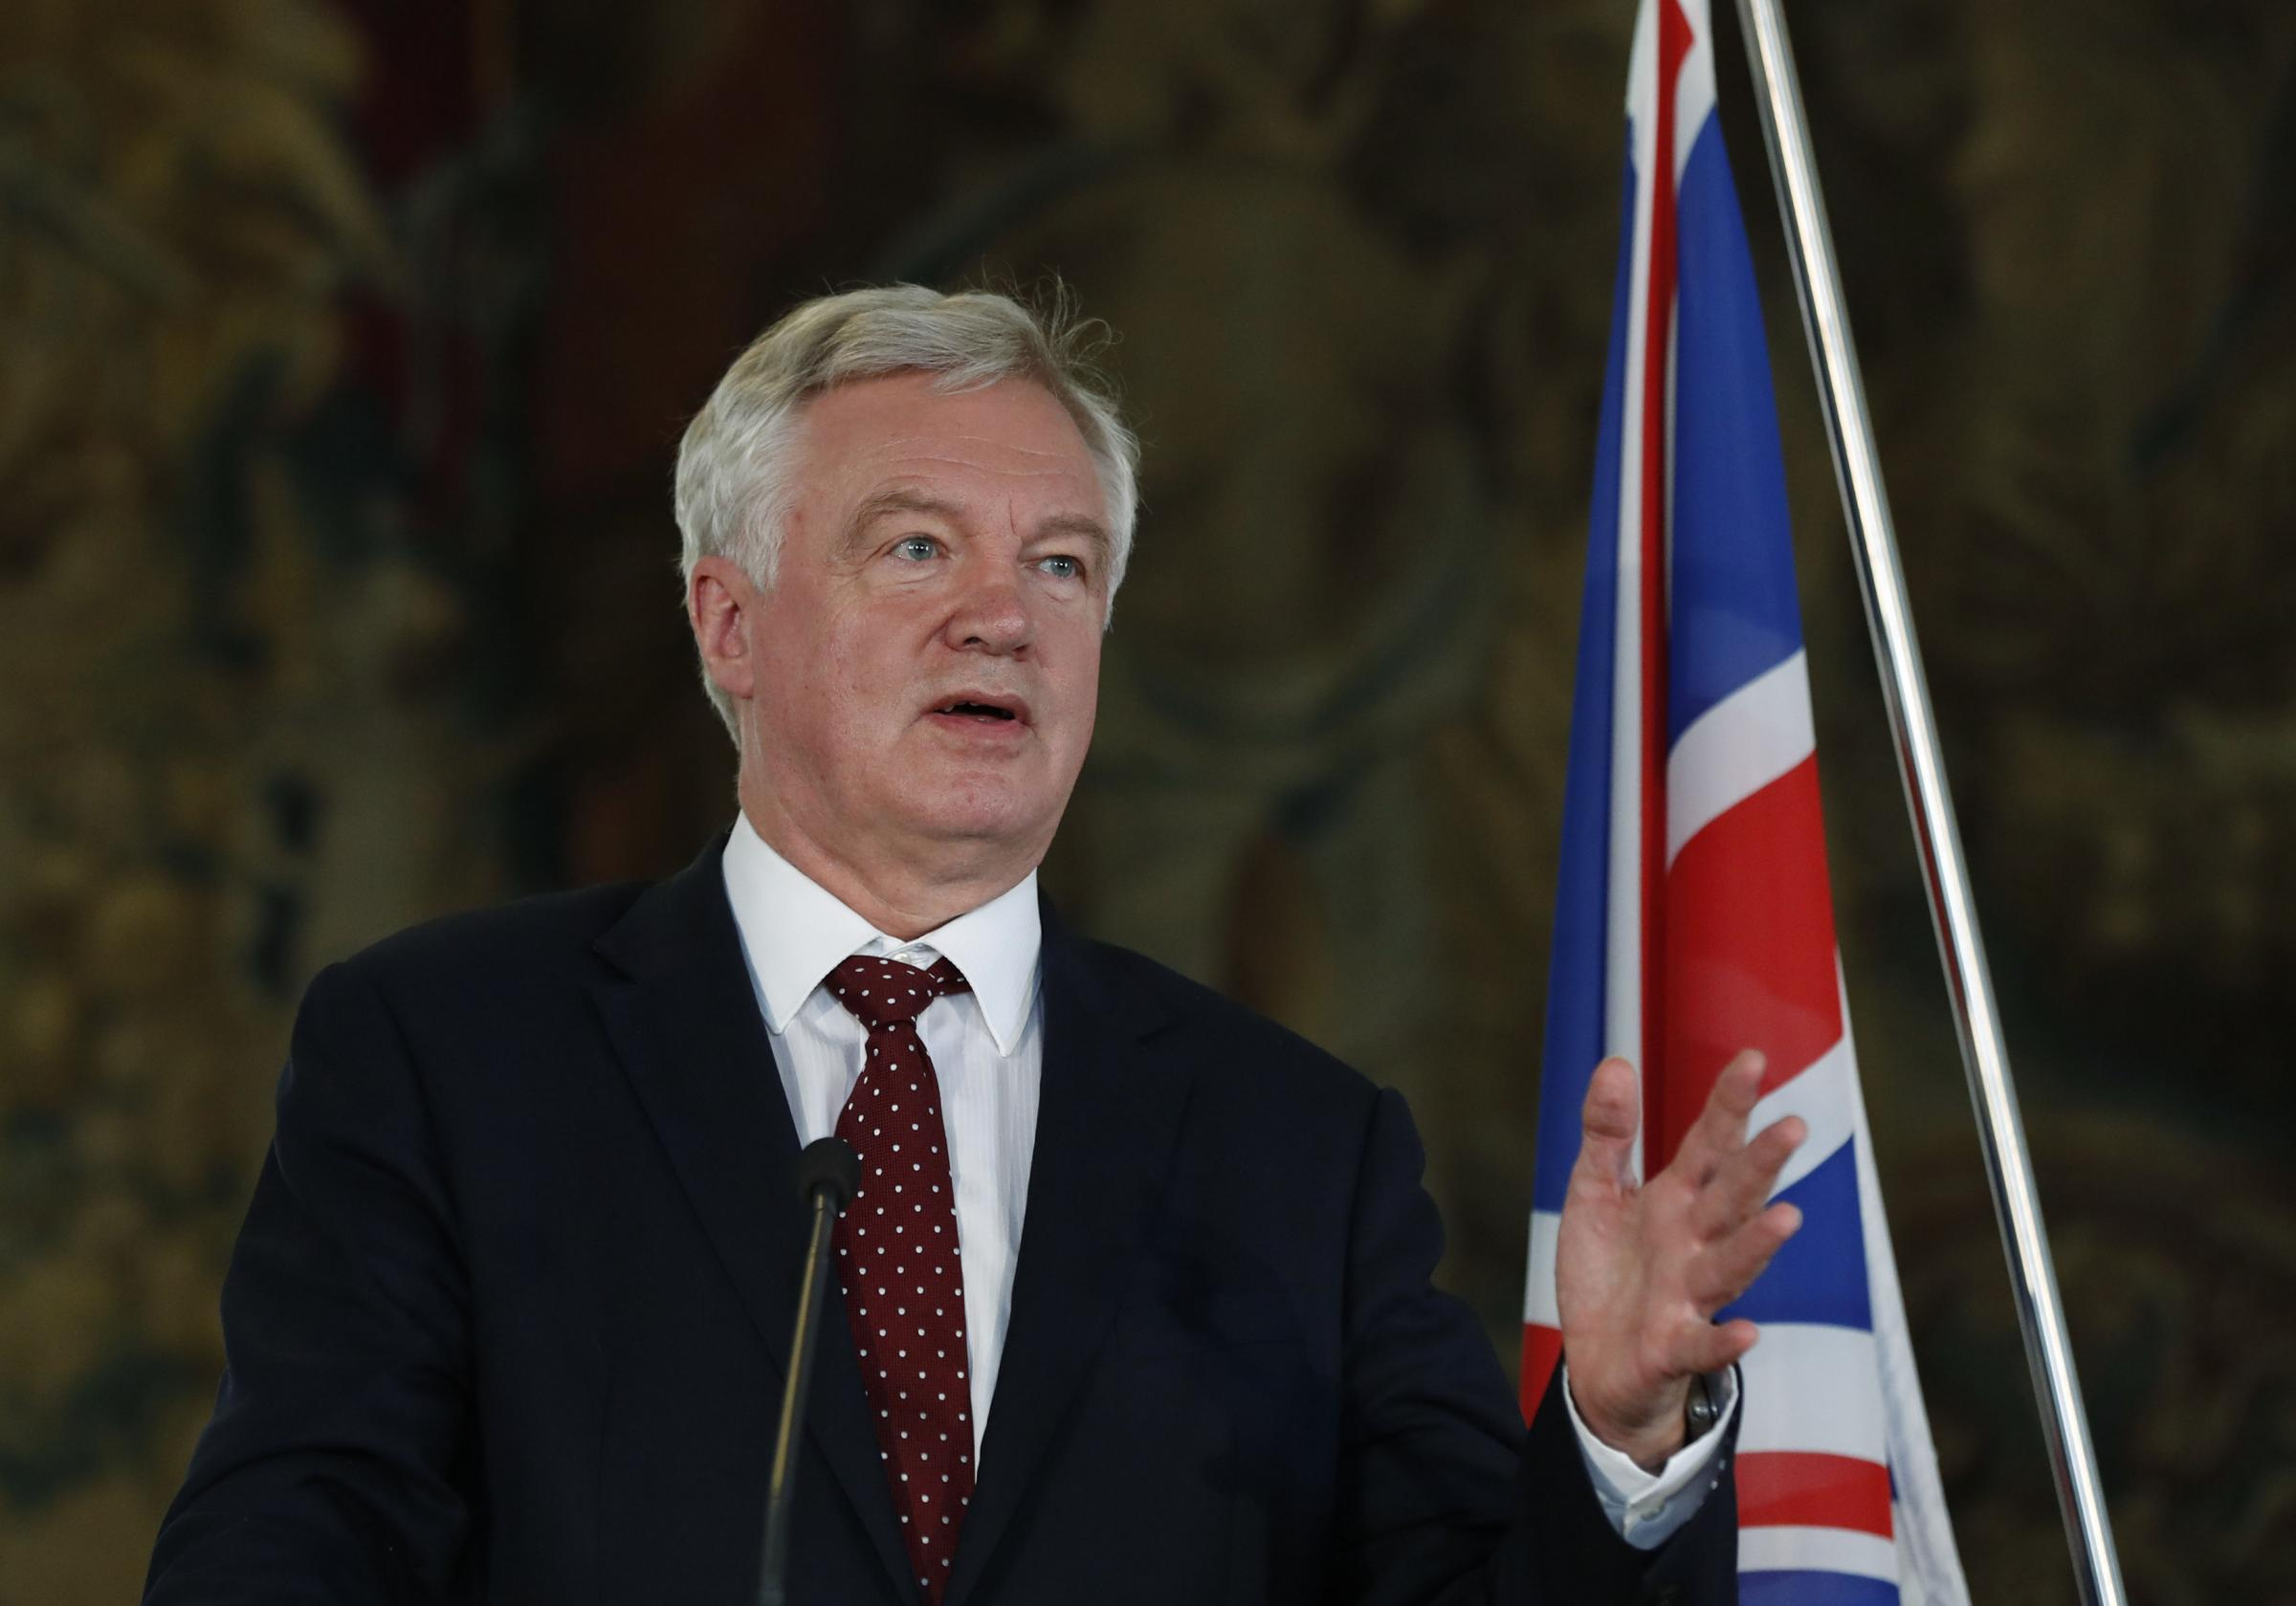 Moral imperative to secure EU citizens' rights, insists Davis, but role of ECJ is sticking point